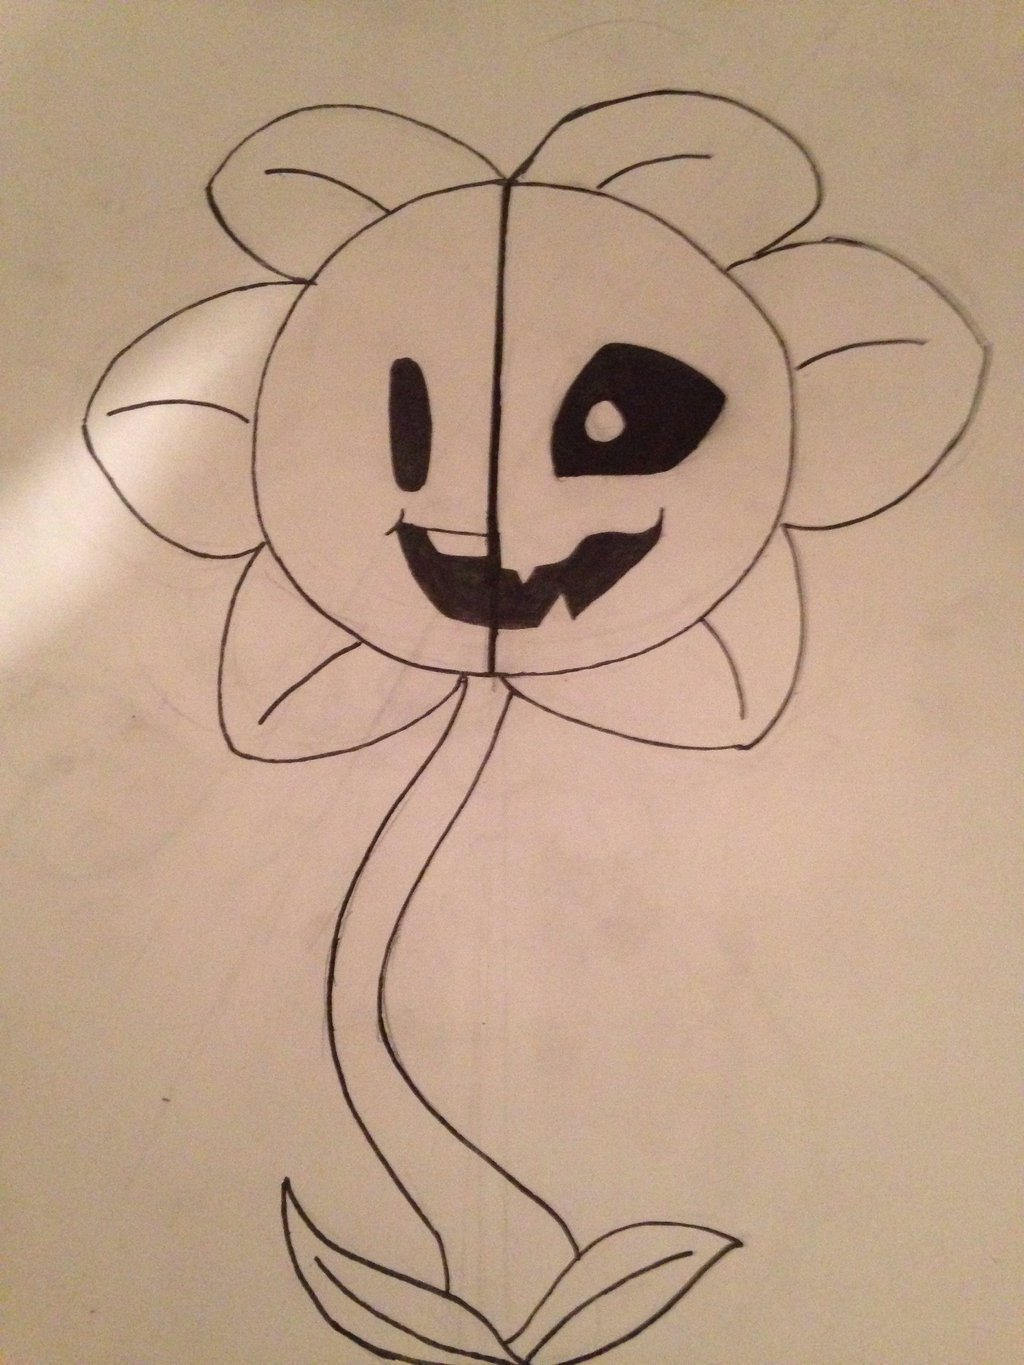 Flowey-9th inktober by daFox11